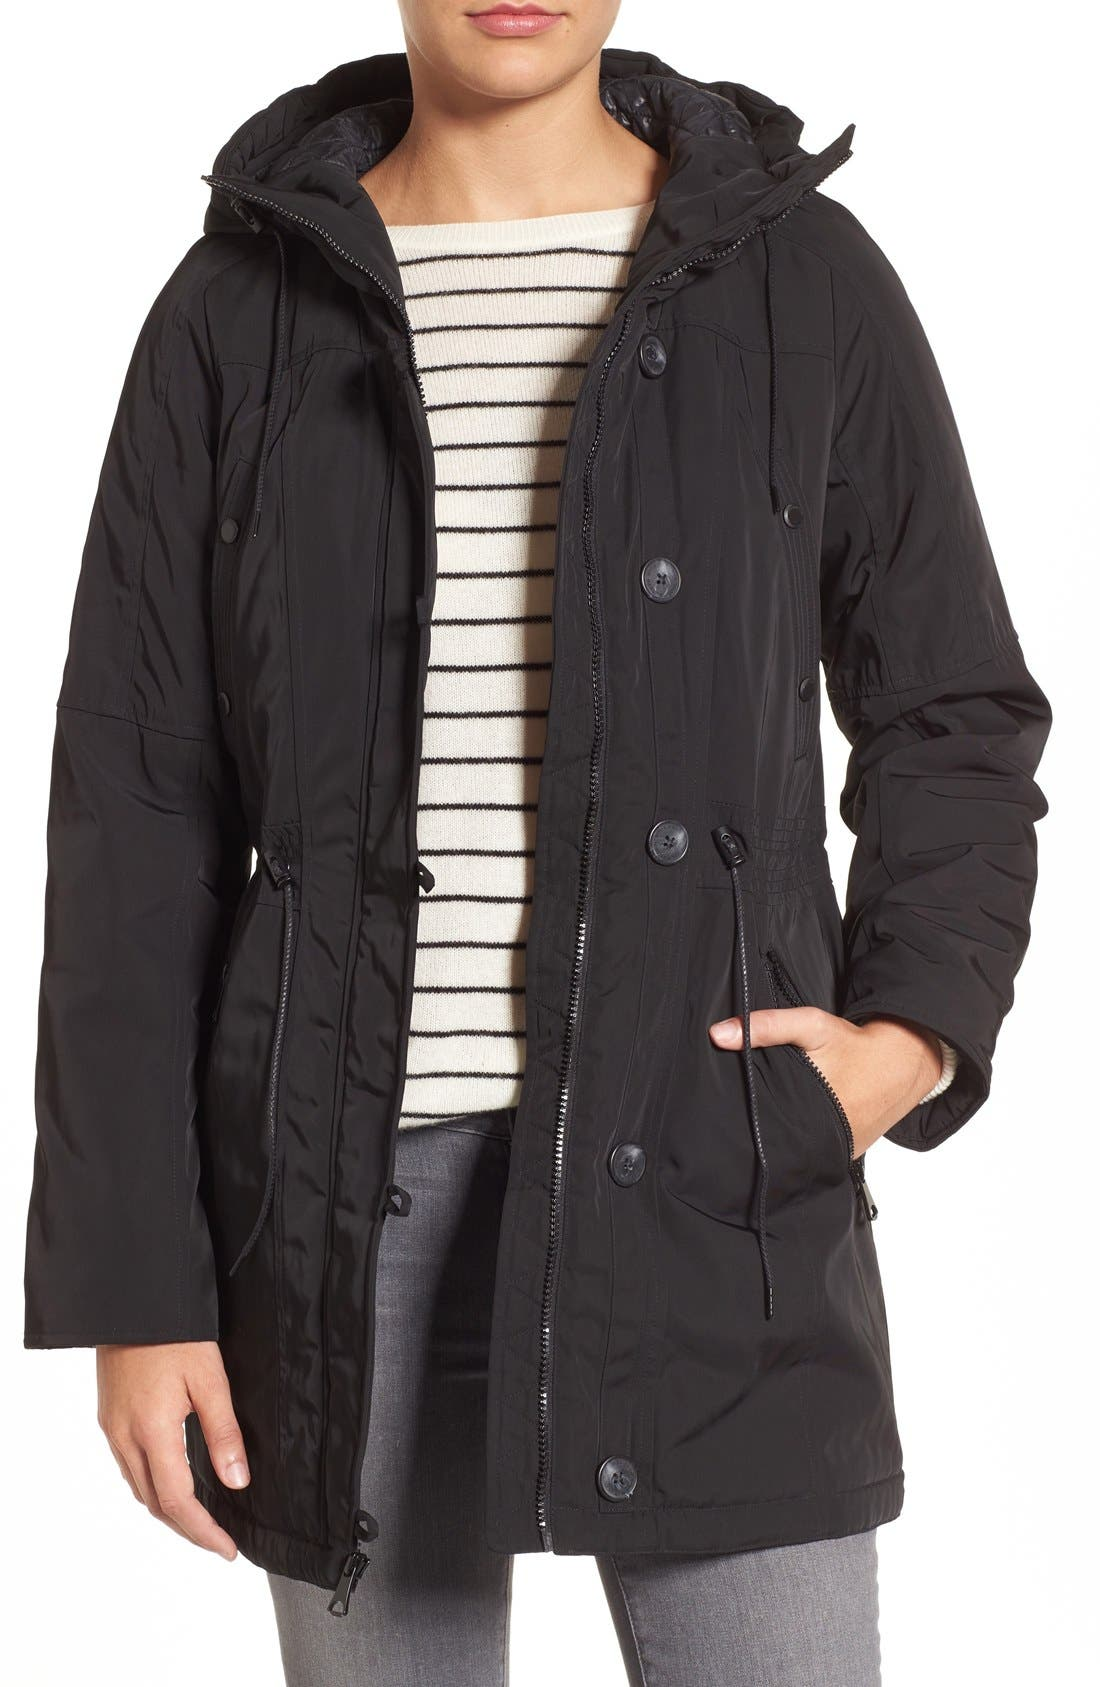 Marc New York by Andrew Marc 'Chrissy' Rain Coat with Removable Hood, Main, color, 001